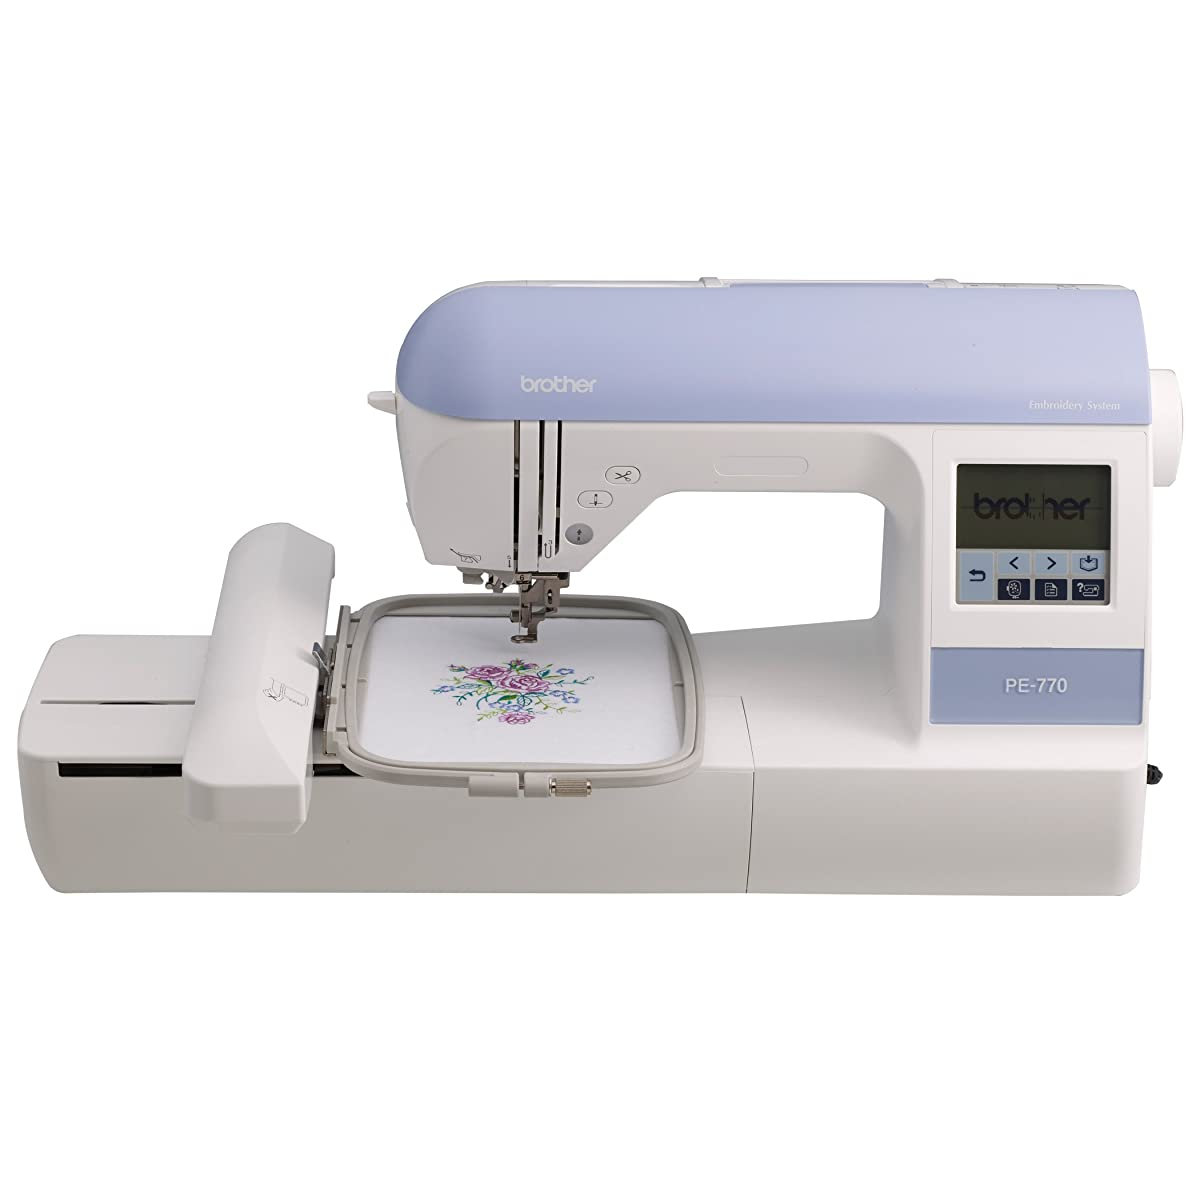 Brother PE770 5x7 inch Embroidery machine with built-in memory, USB port, 6 lettering fonts and 136 built-in designs